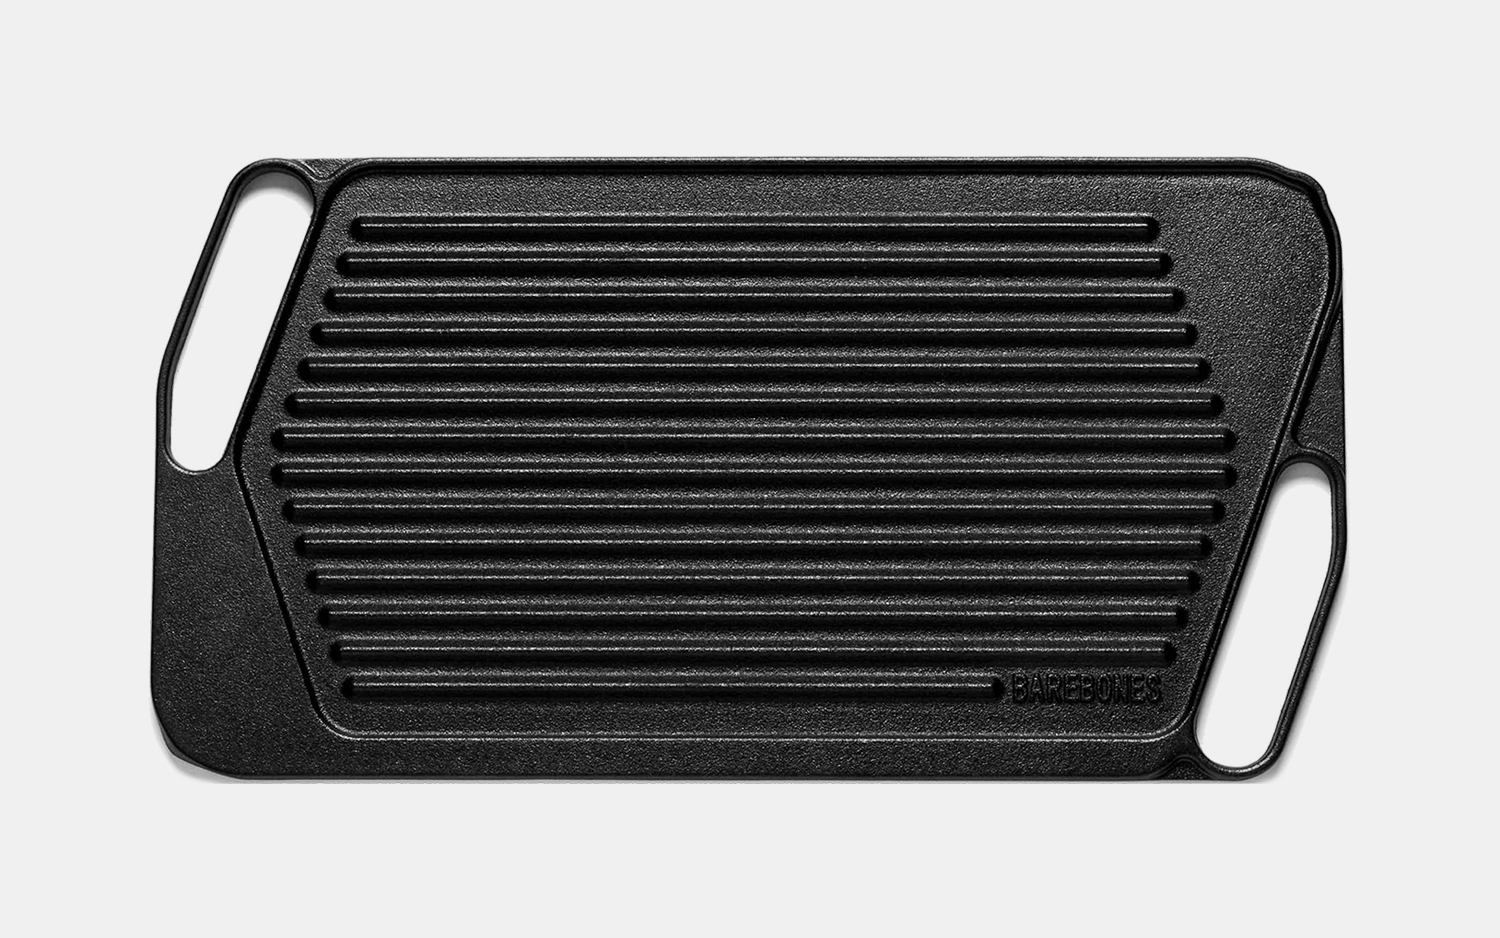 Barebones Cast Iron Griddle